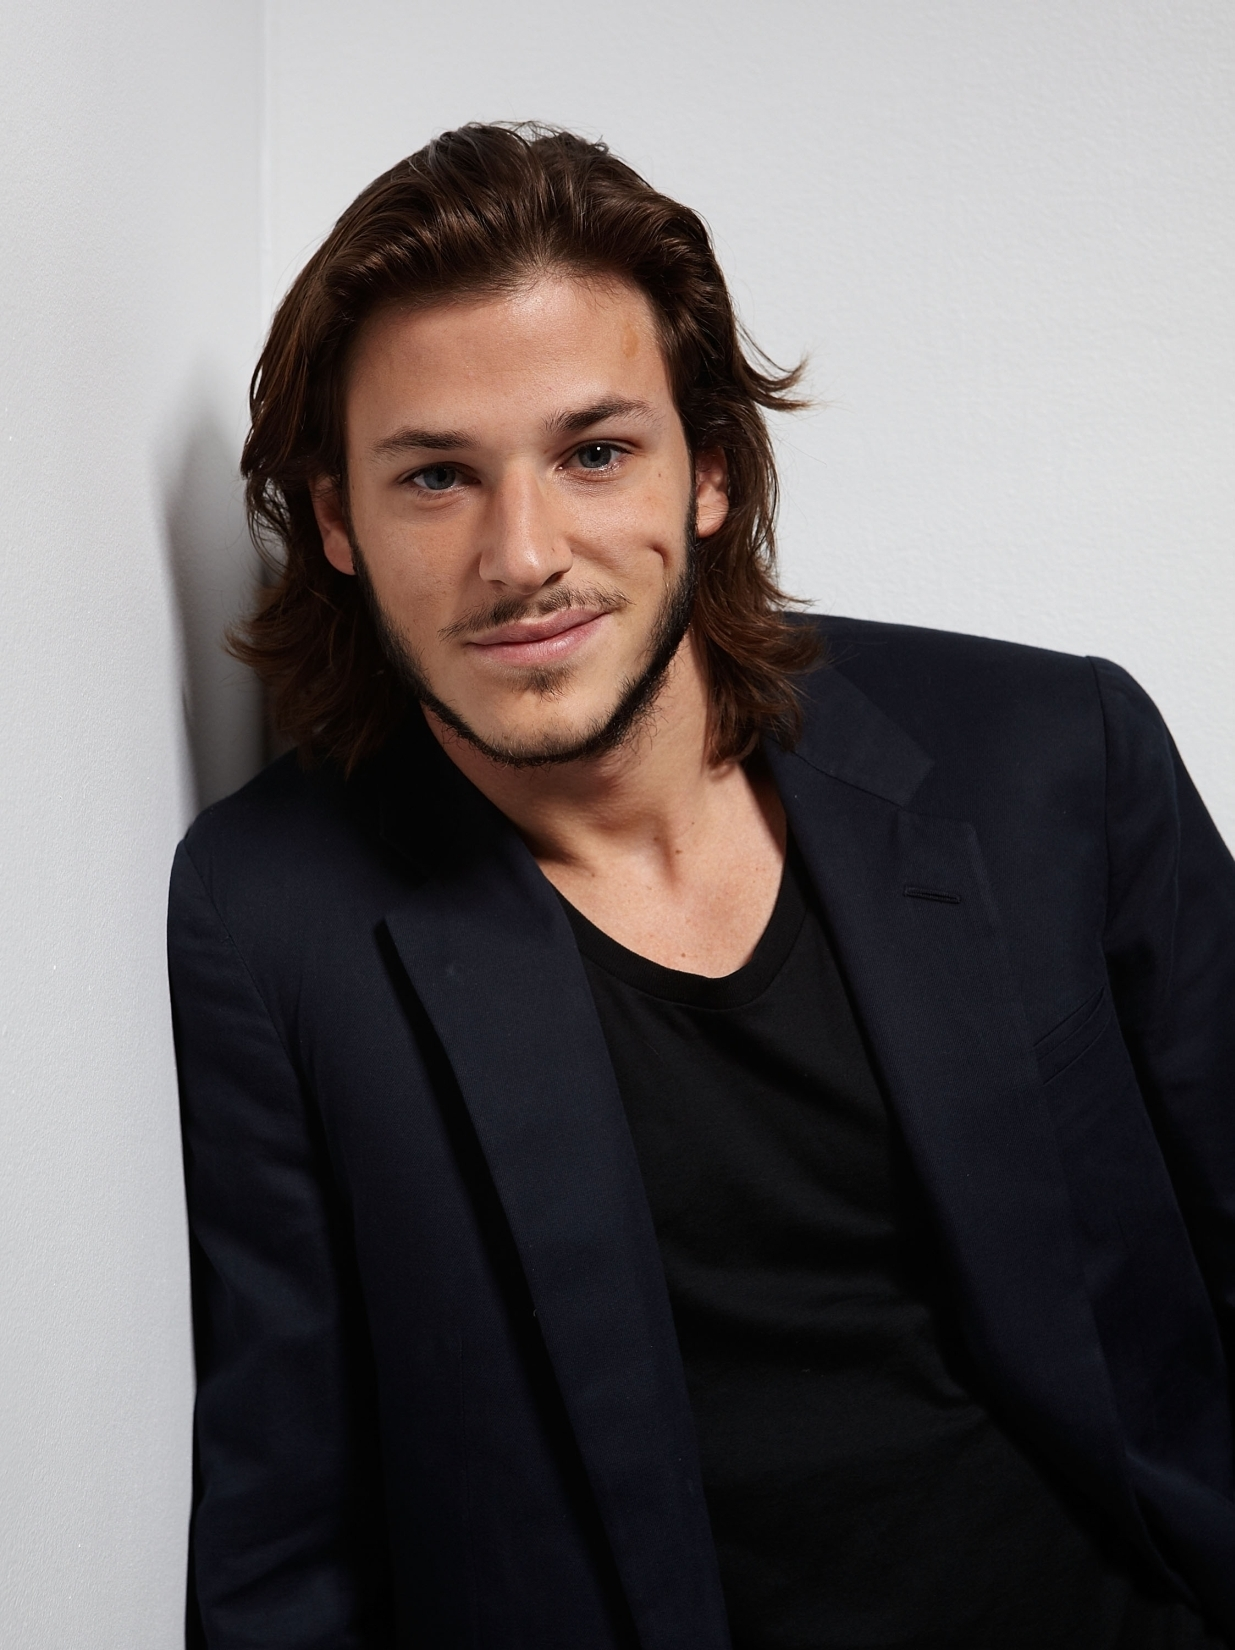 gaspard ulliel 2017gaspard ulliel instagram, gaspard ulliel gif, gaspard ulliel chanel, gaspard ulliel tumblr, gaspard ulliel 2017, gaspard ulliel vk, gaspard ulliel son, gaspard ulliel gif hunt, gaspard ulliel height, gaspard ulliel 2016, gaspard ulliel young, gaspard ulliel interview, gaspard ulliel film, gaspard ulliel haircut, gaspard ulliel png, gaspard ulliel who dated who, gaspard ulliel photo, gaspard ulliel fan, gaspard ulliel girl, gaspard ulliel glasses